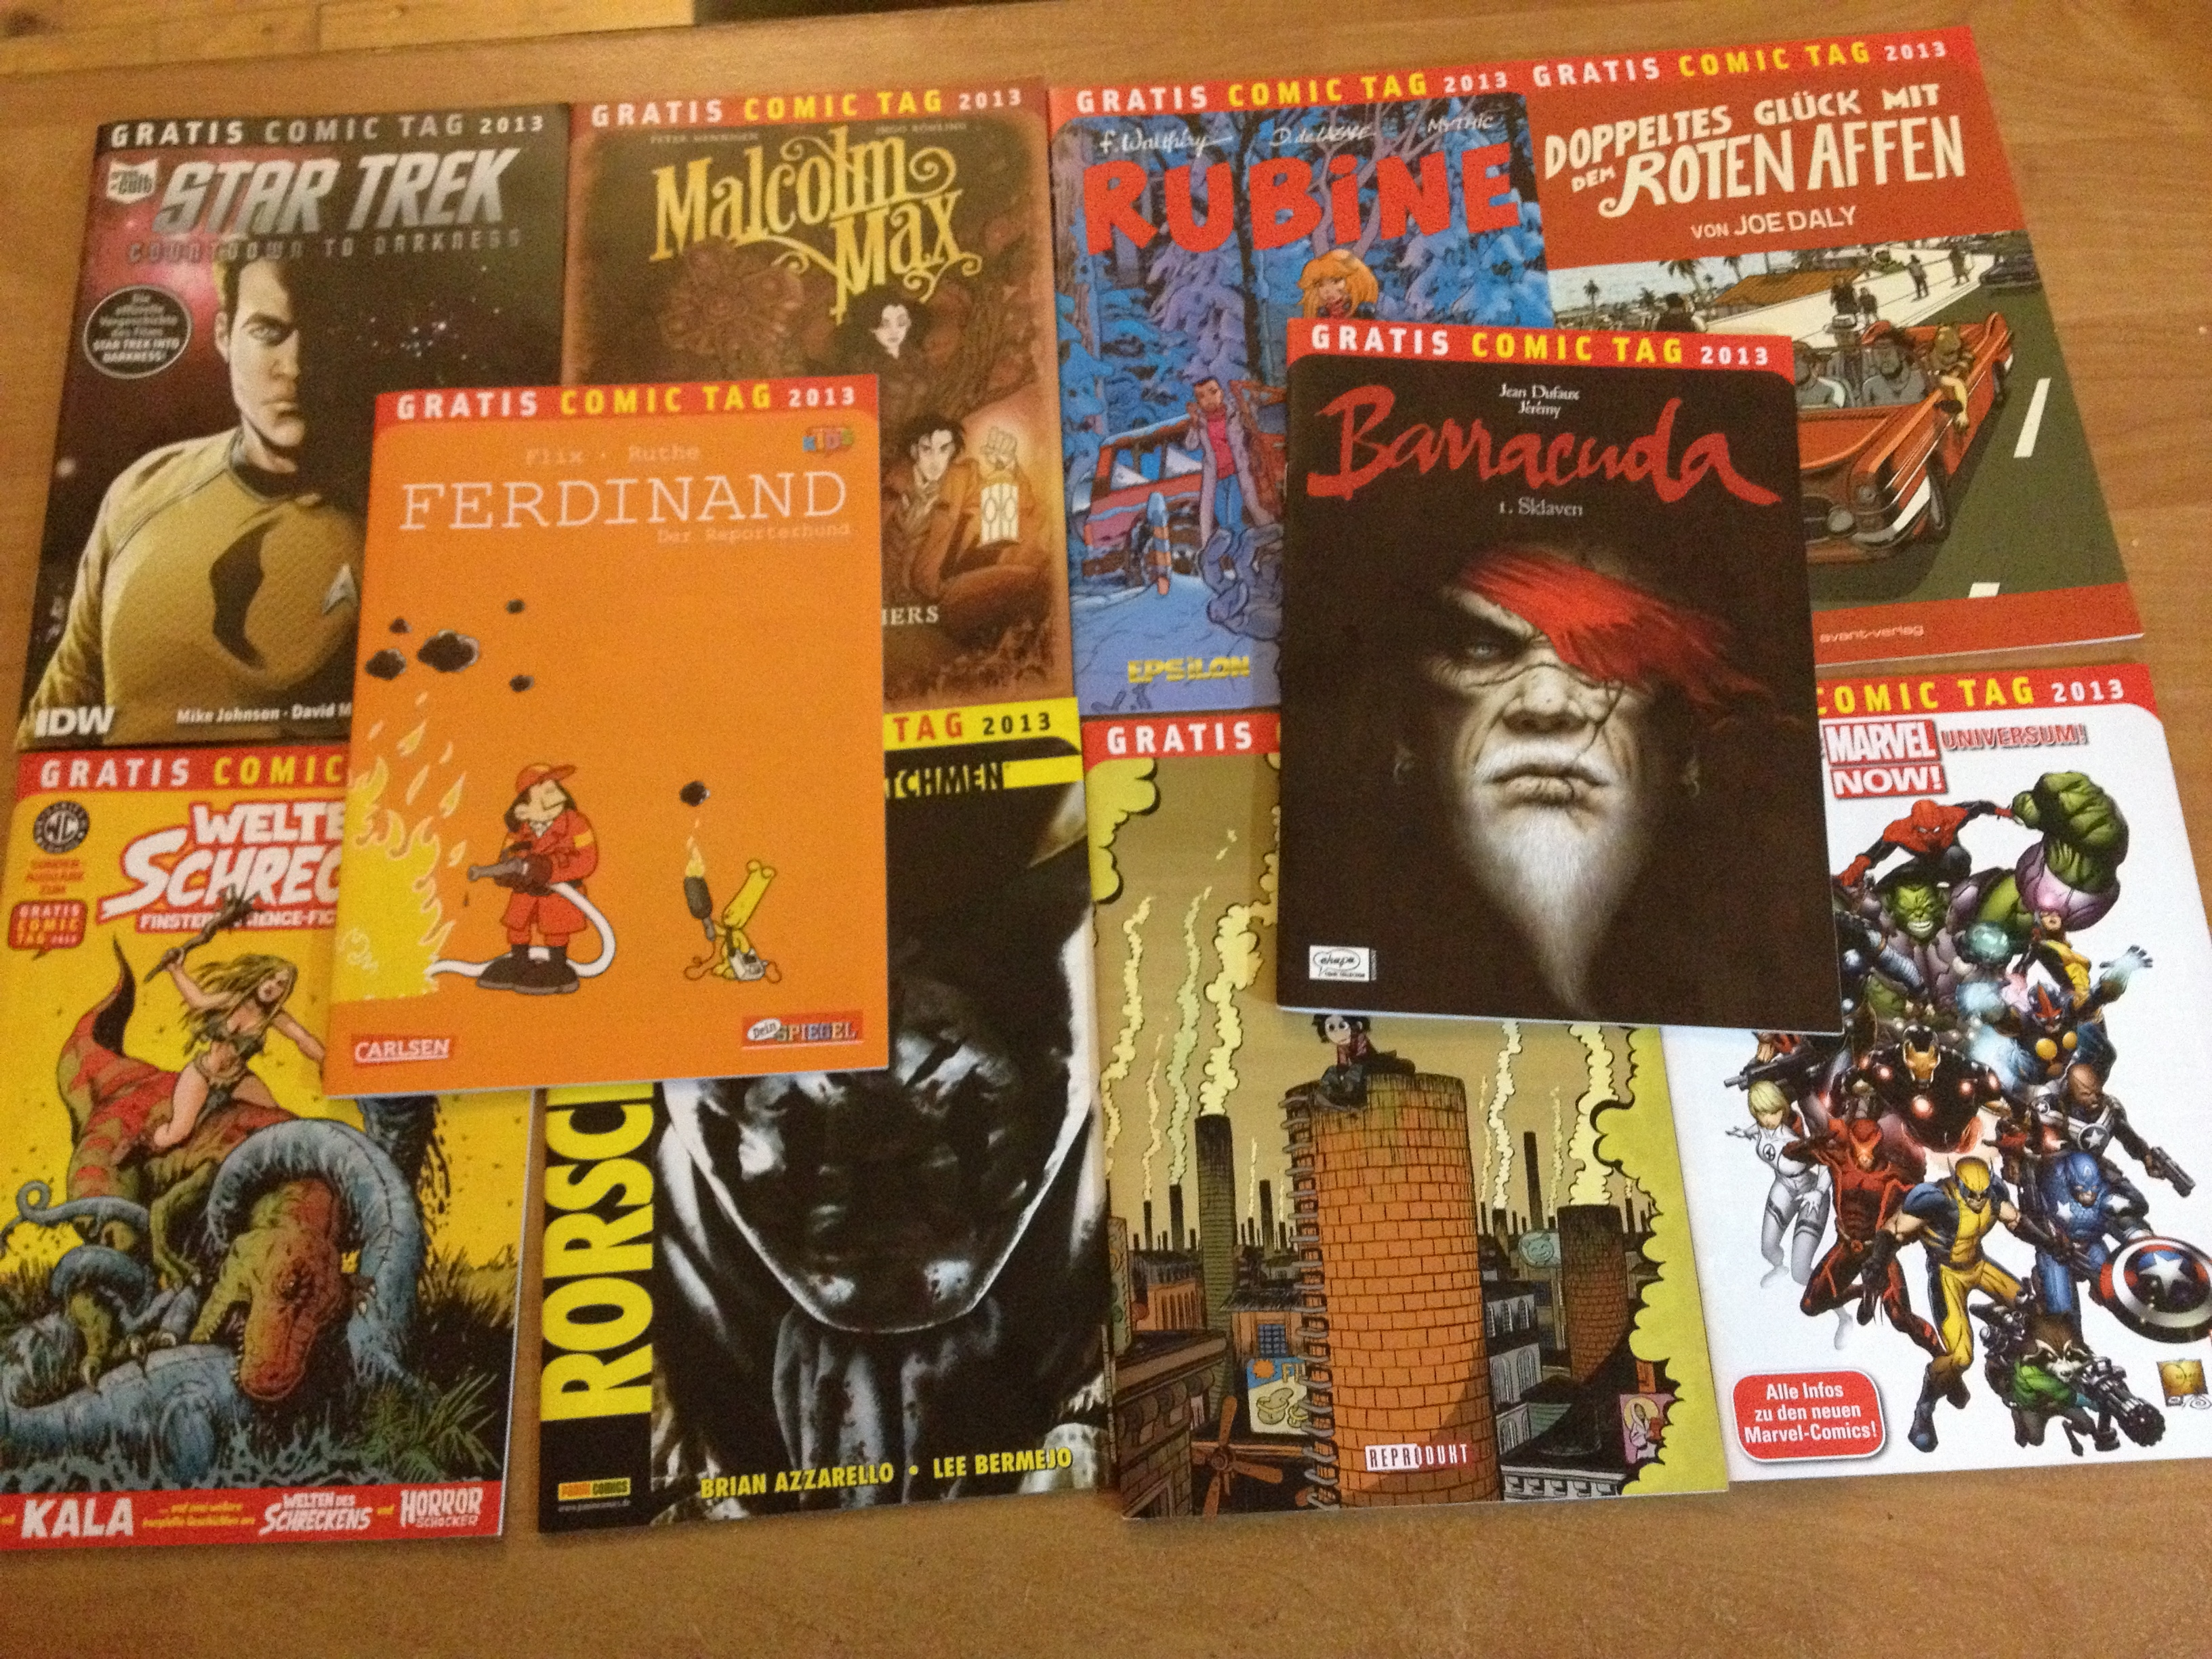 Gratis Comic Tag 2013 – Teil 1: Marvel Now, Barracuda und Ferdinand